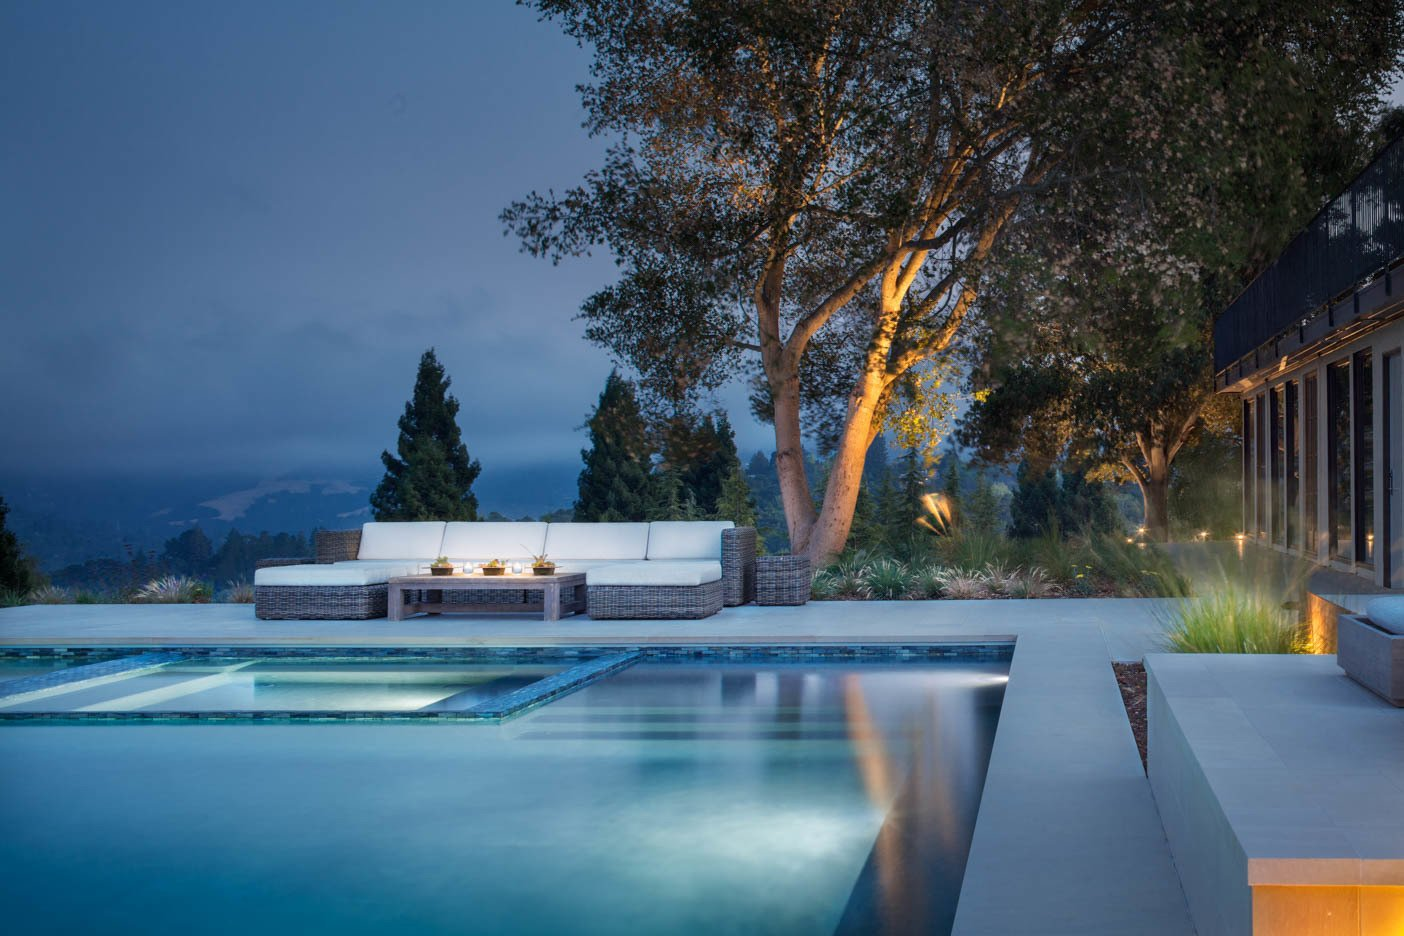 Tagged: Outdoor, Back Yard, Trees, Shrubs, Hardscapes, Large Pools, Tubs, Shower, Large Patio, Porch, Deck, Grass, and Landscape Lighting.  A pool with a view by Agnieszka Jakubowicz